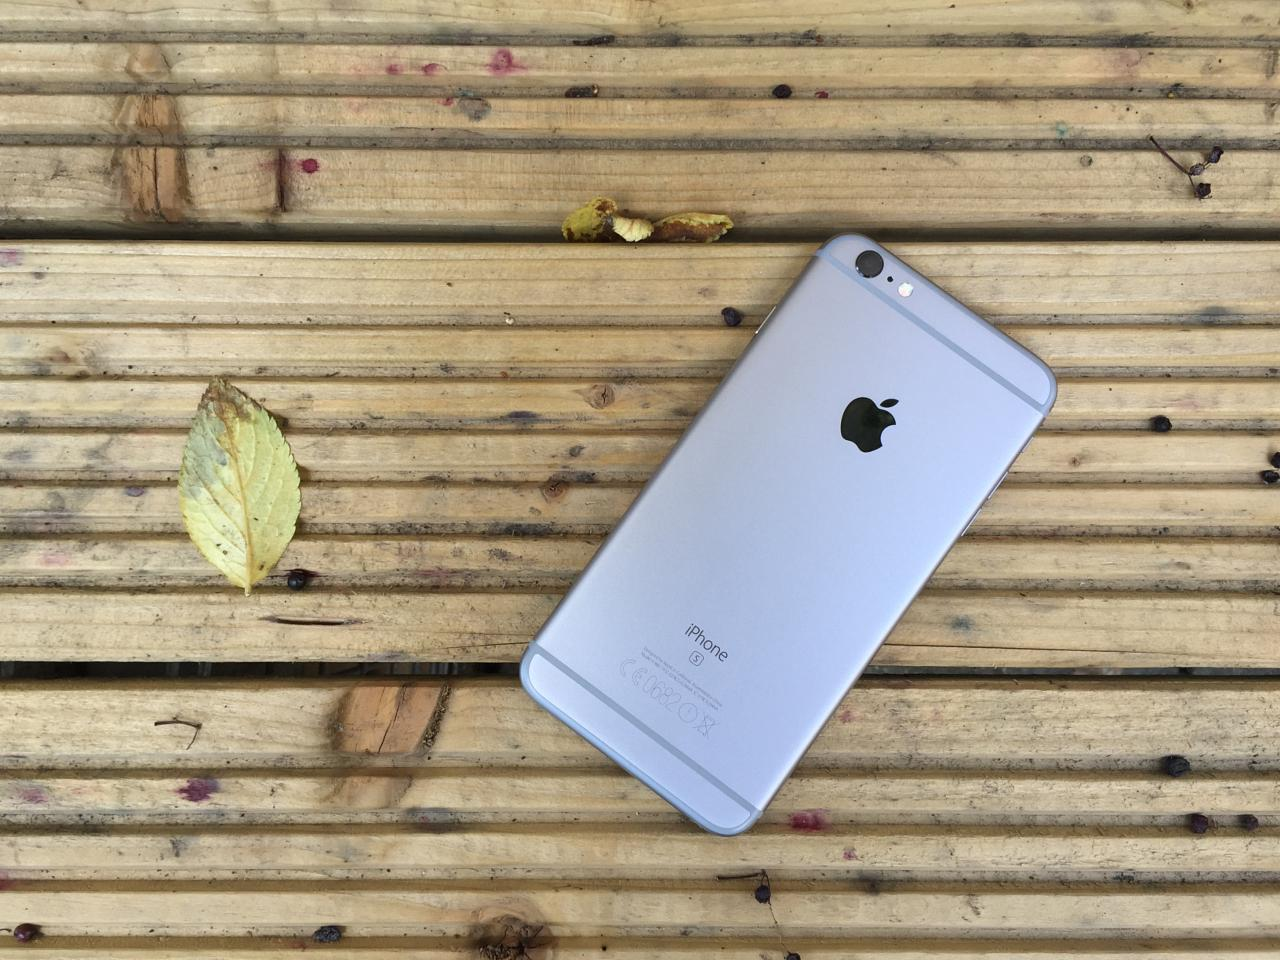 Apple iPhone 6S Plus, rear